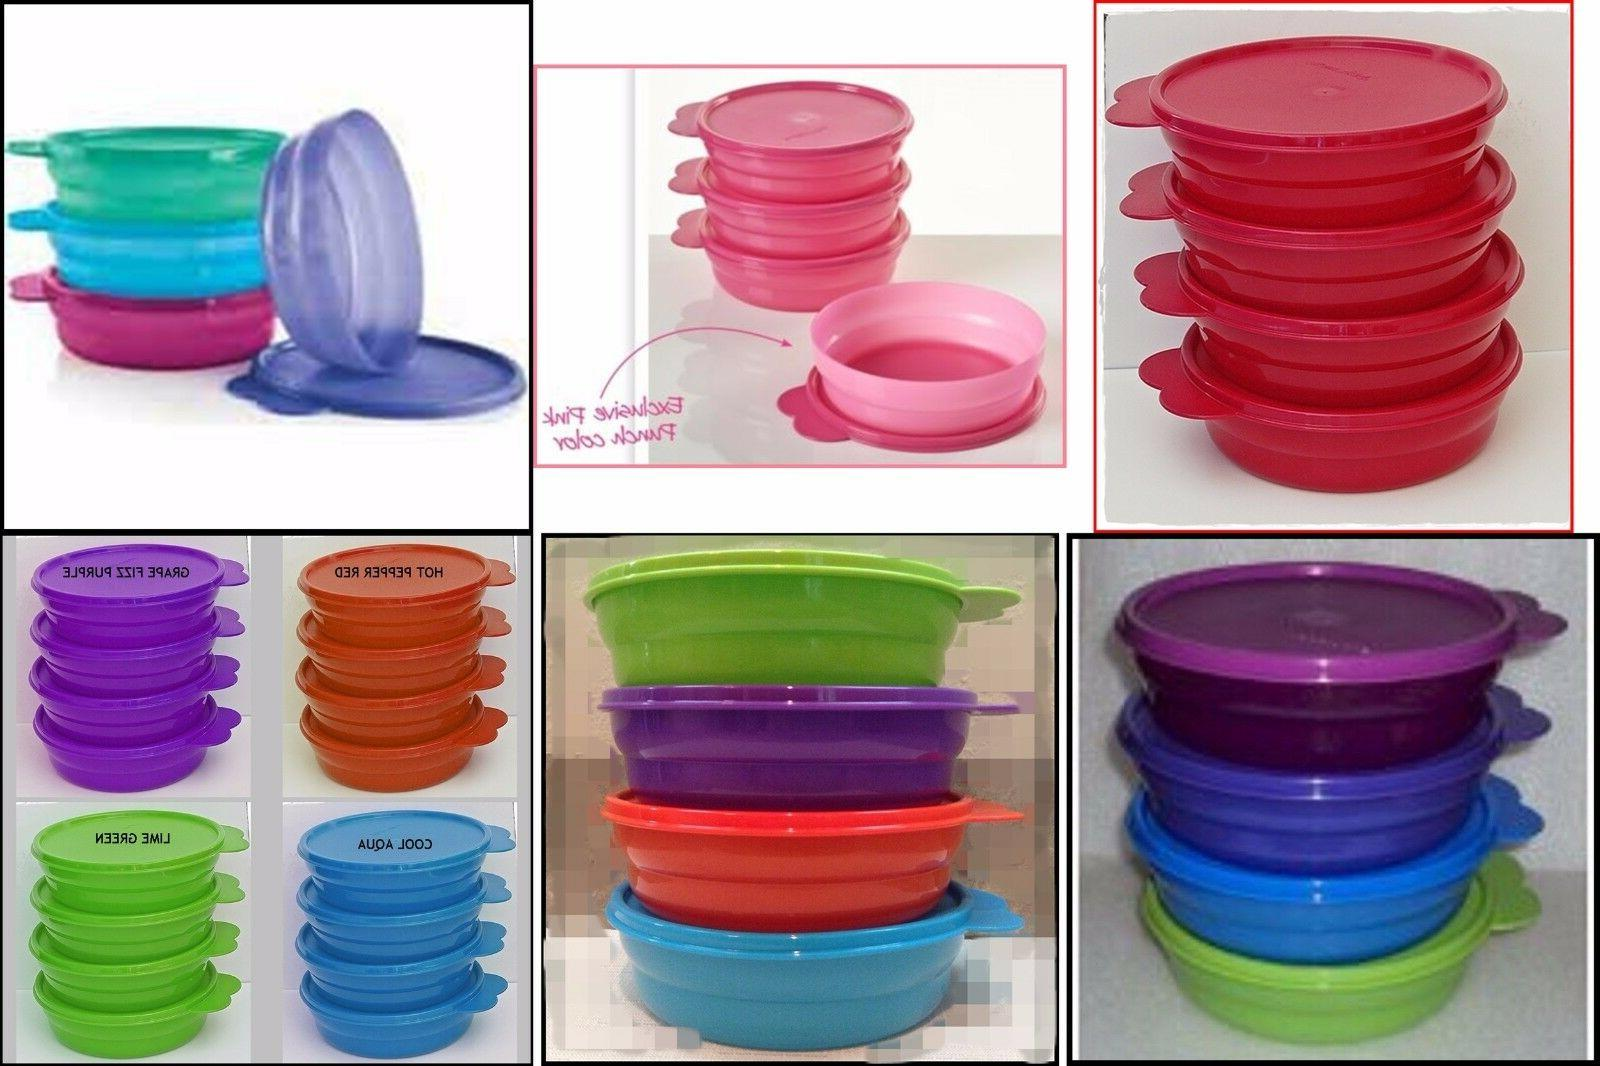 TUPPERWARE MICROWAVE 2 CUP CEREAL BOWL SET OF 4 BOWLS U PICK